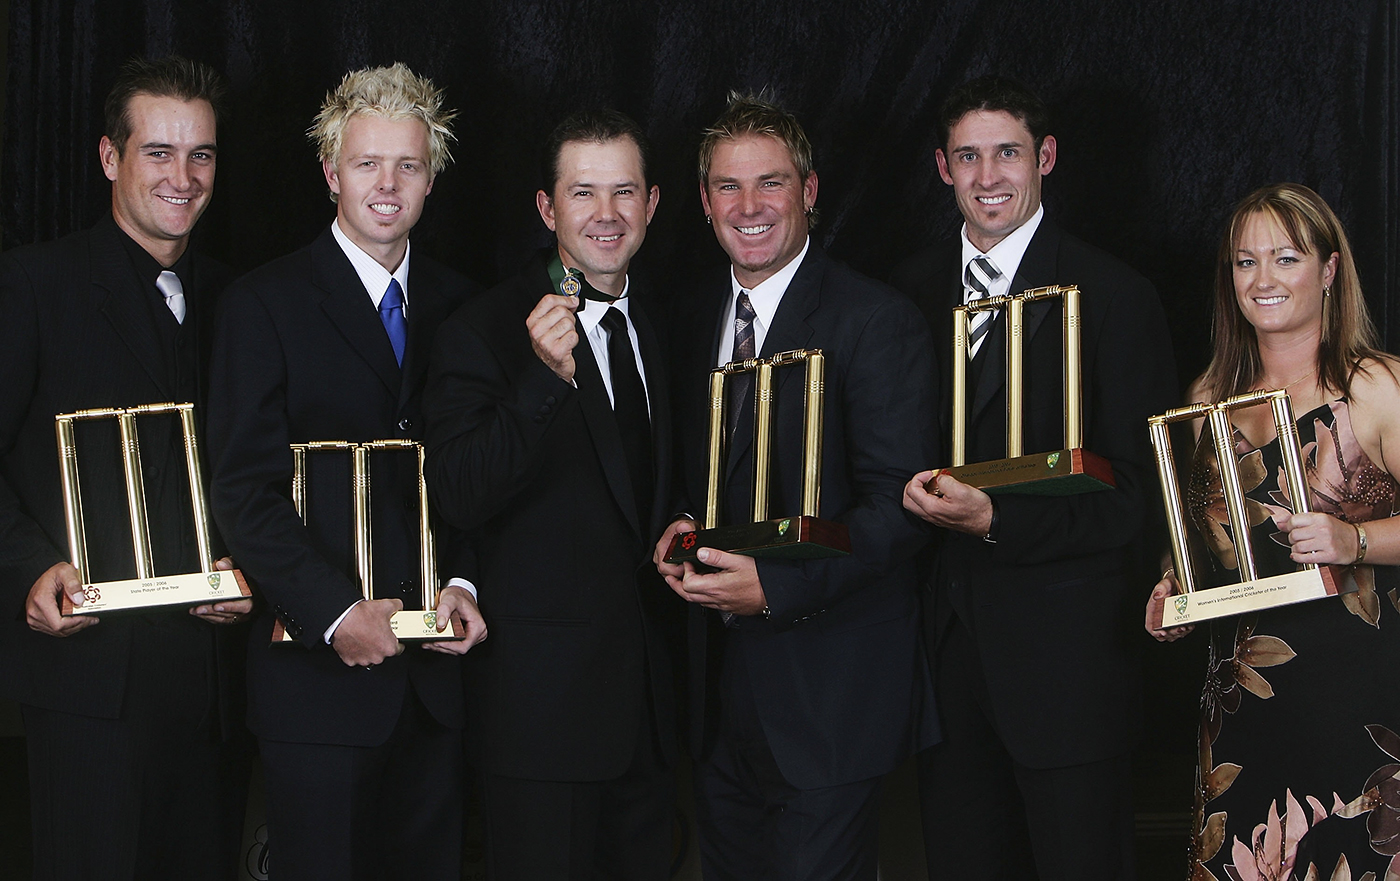 Cullen (second from left) with the game's legends to his right - Ricky Ponting, Shane Warne, Michael Hussey and Karen Rolton - at the 2006 Allan Border Medal dinner where he won the Bradman Young Cricketer of the Year